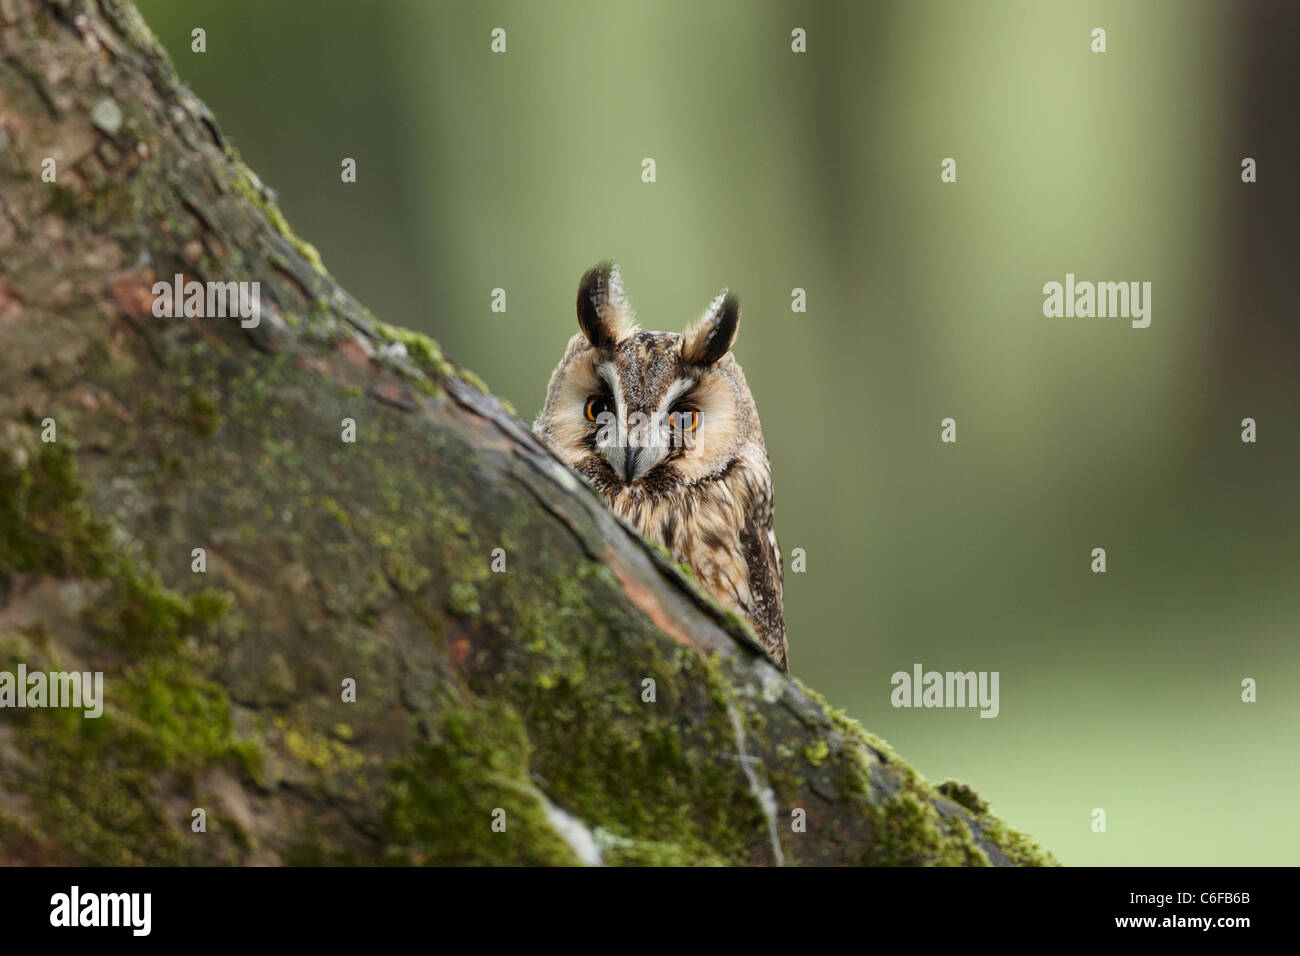 A captive Long-eared Owl,Asio otus,peering over a tree trunk in Mid Wales, - Stock Image